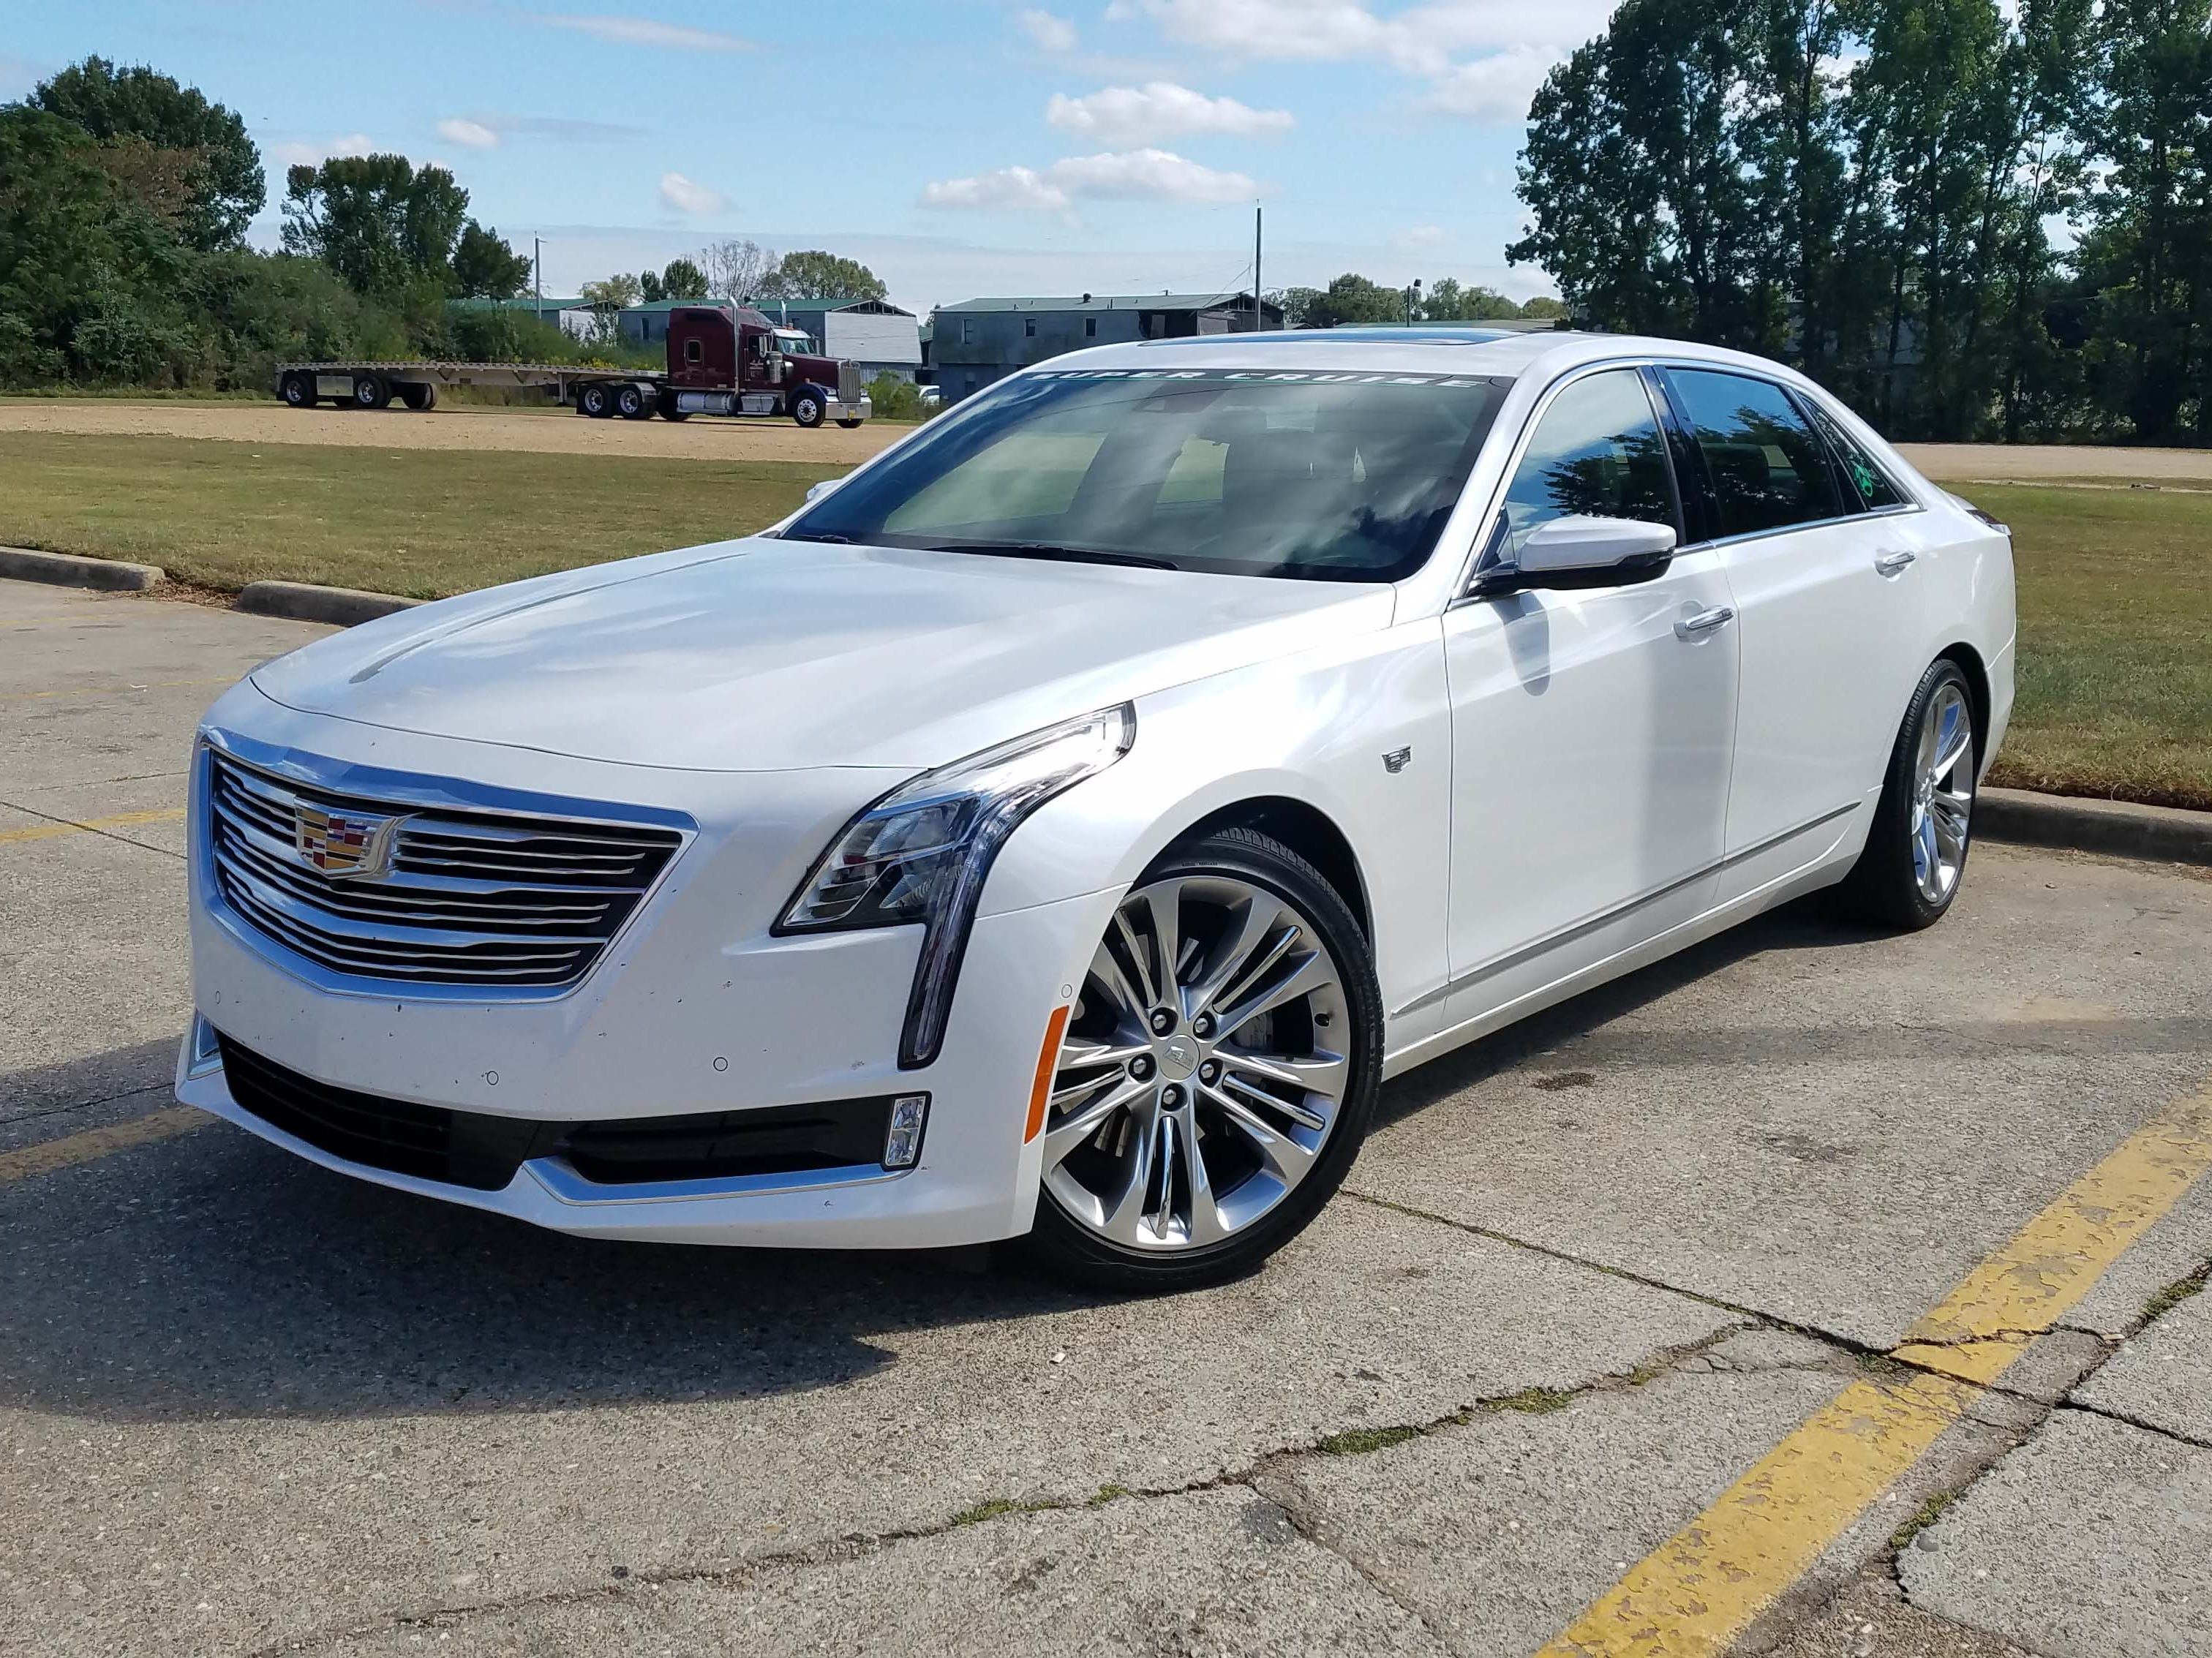 SuperCruise driver assist is available standard on the 2017 Cadillac CT6 Platinum sedan. It is a $5,000 feature on other CT6 models.